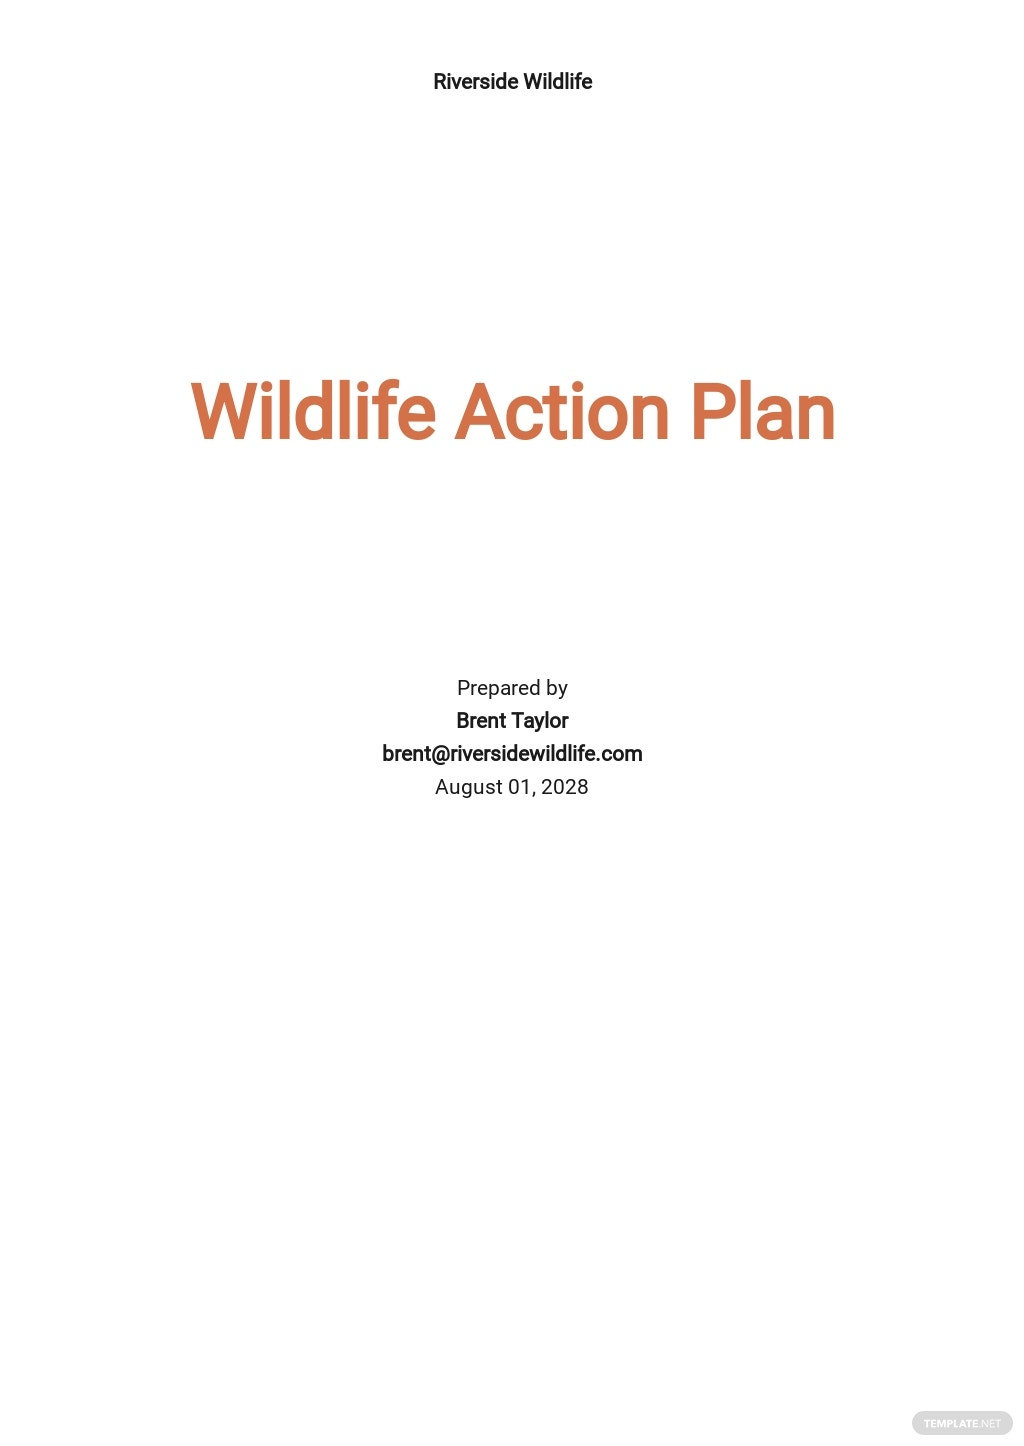 Wildlife Action Action Plan Template